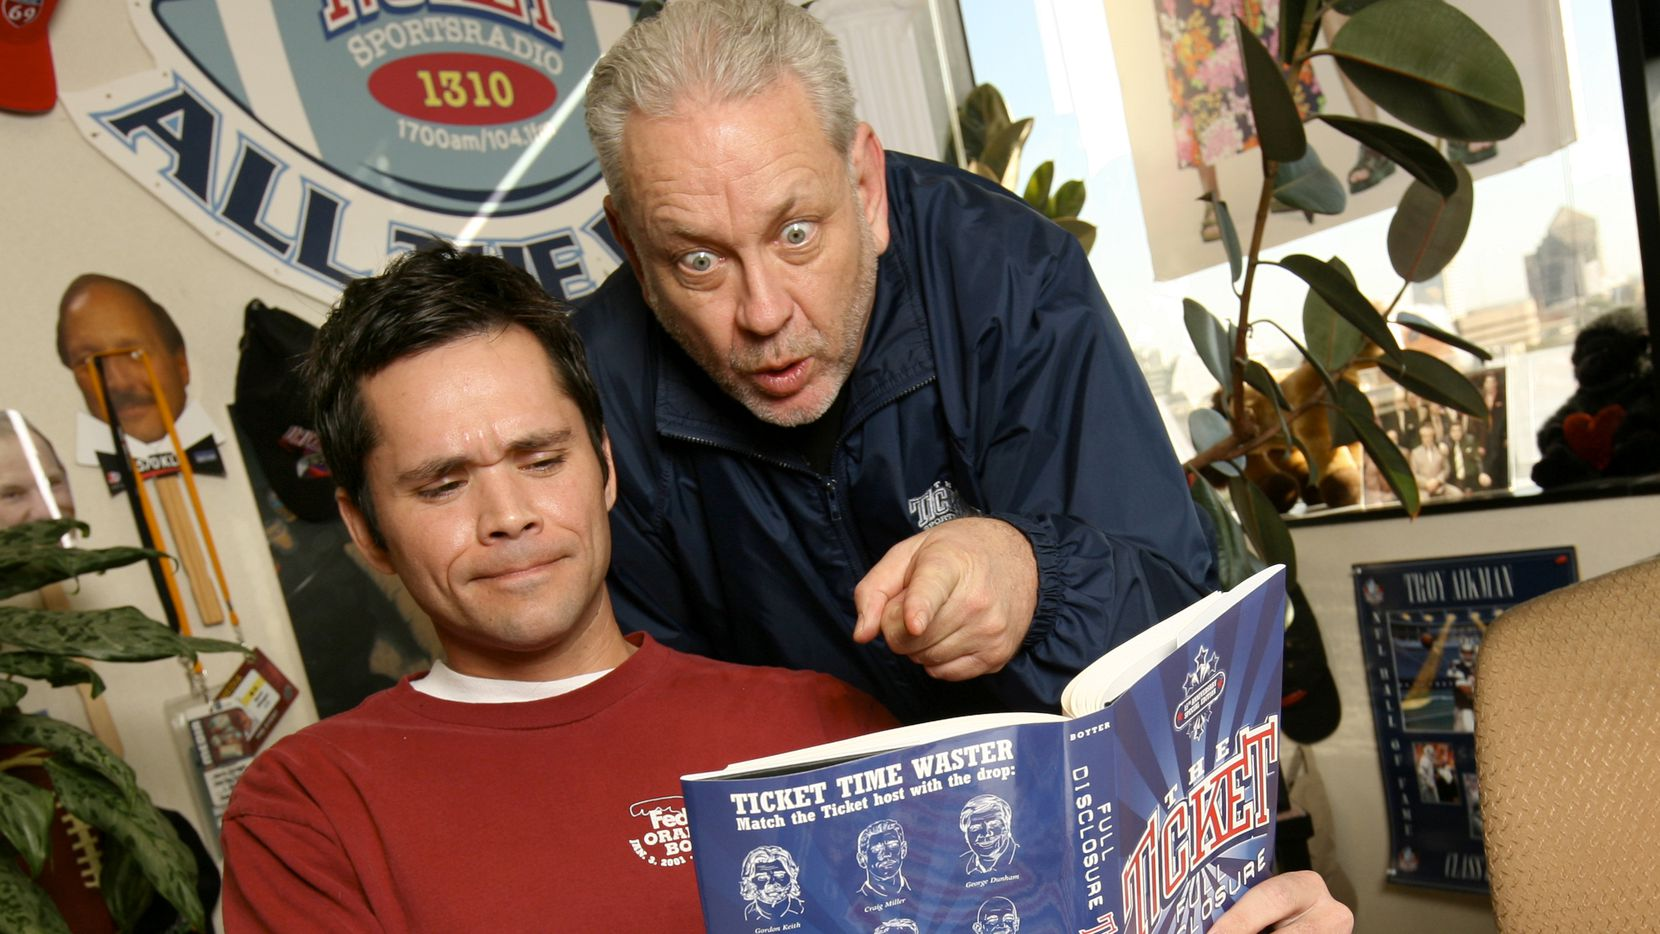 Corby Davidson (left) and Mike Rhyner look through a book at The Ticket offices in Dallas, TX, on Monday, January 5, 2009.